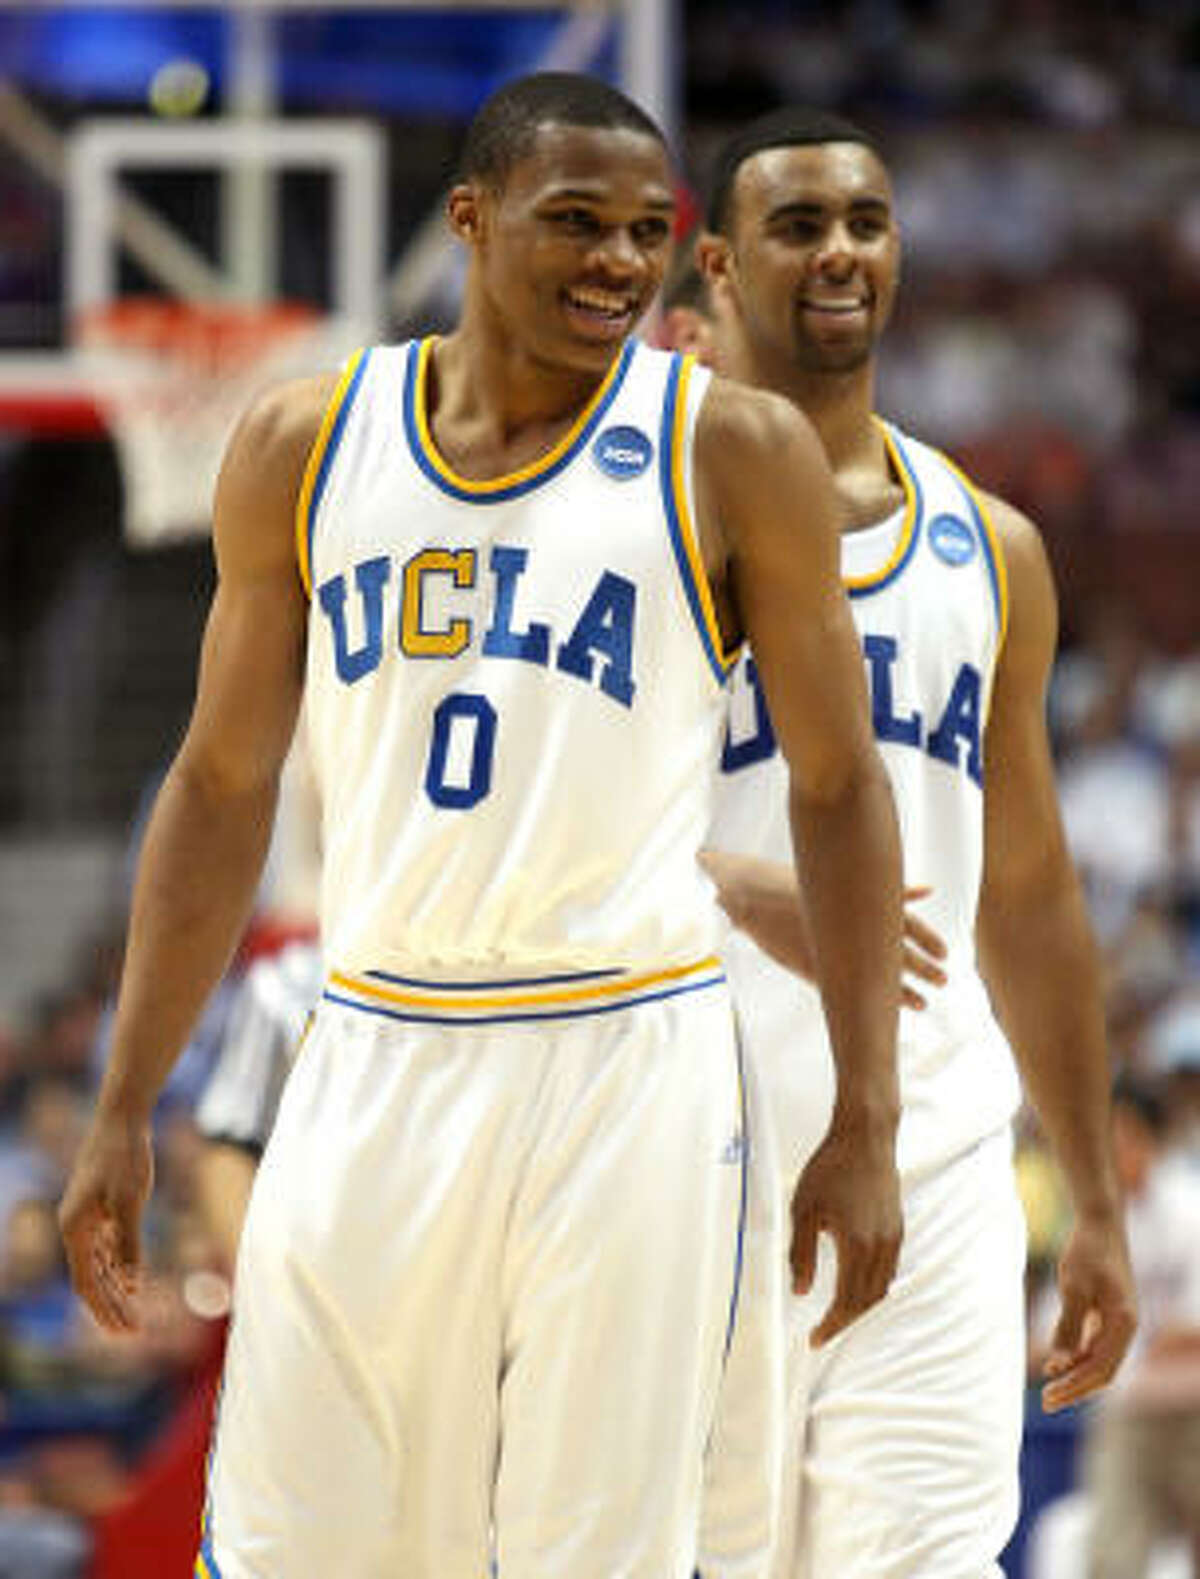 California beginnings The guard was born in Long Beach, Calif., on Nov. 12, 1988 and went on to attend UCLA. During his only two collegiate seasons, he helped lead the Bruins to consecutive Final Four appearances, although the team never captured an NCAA title.